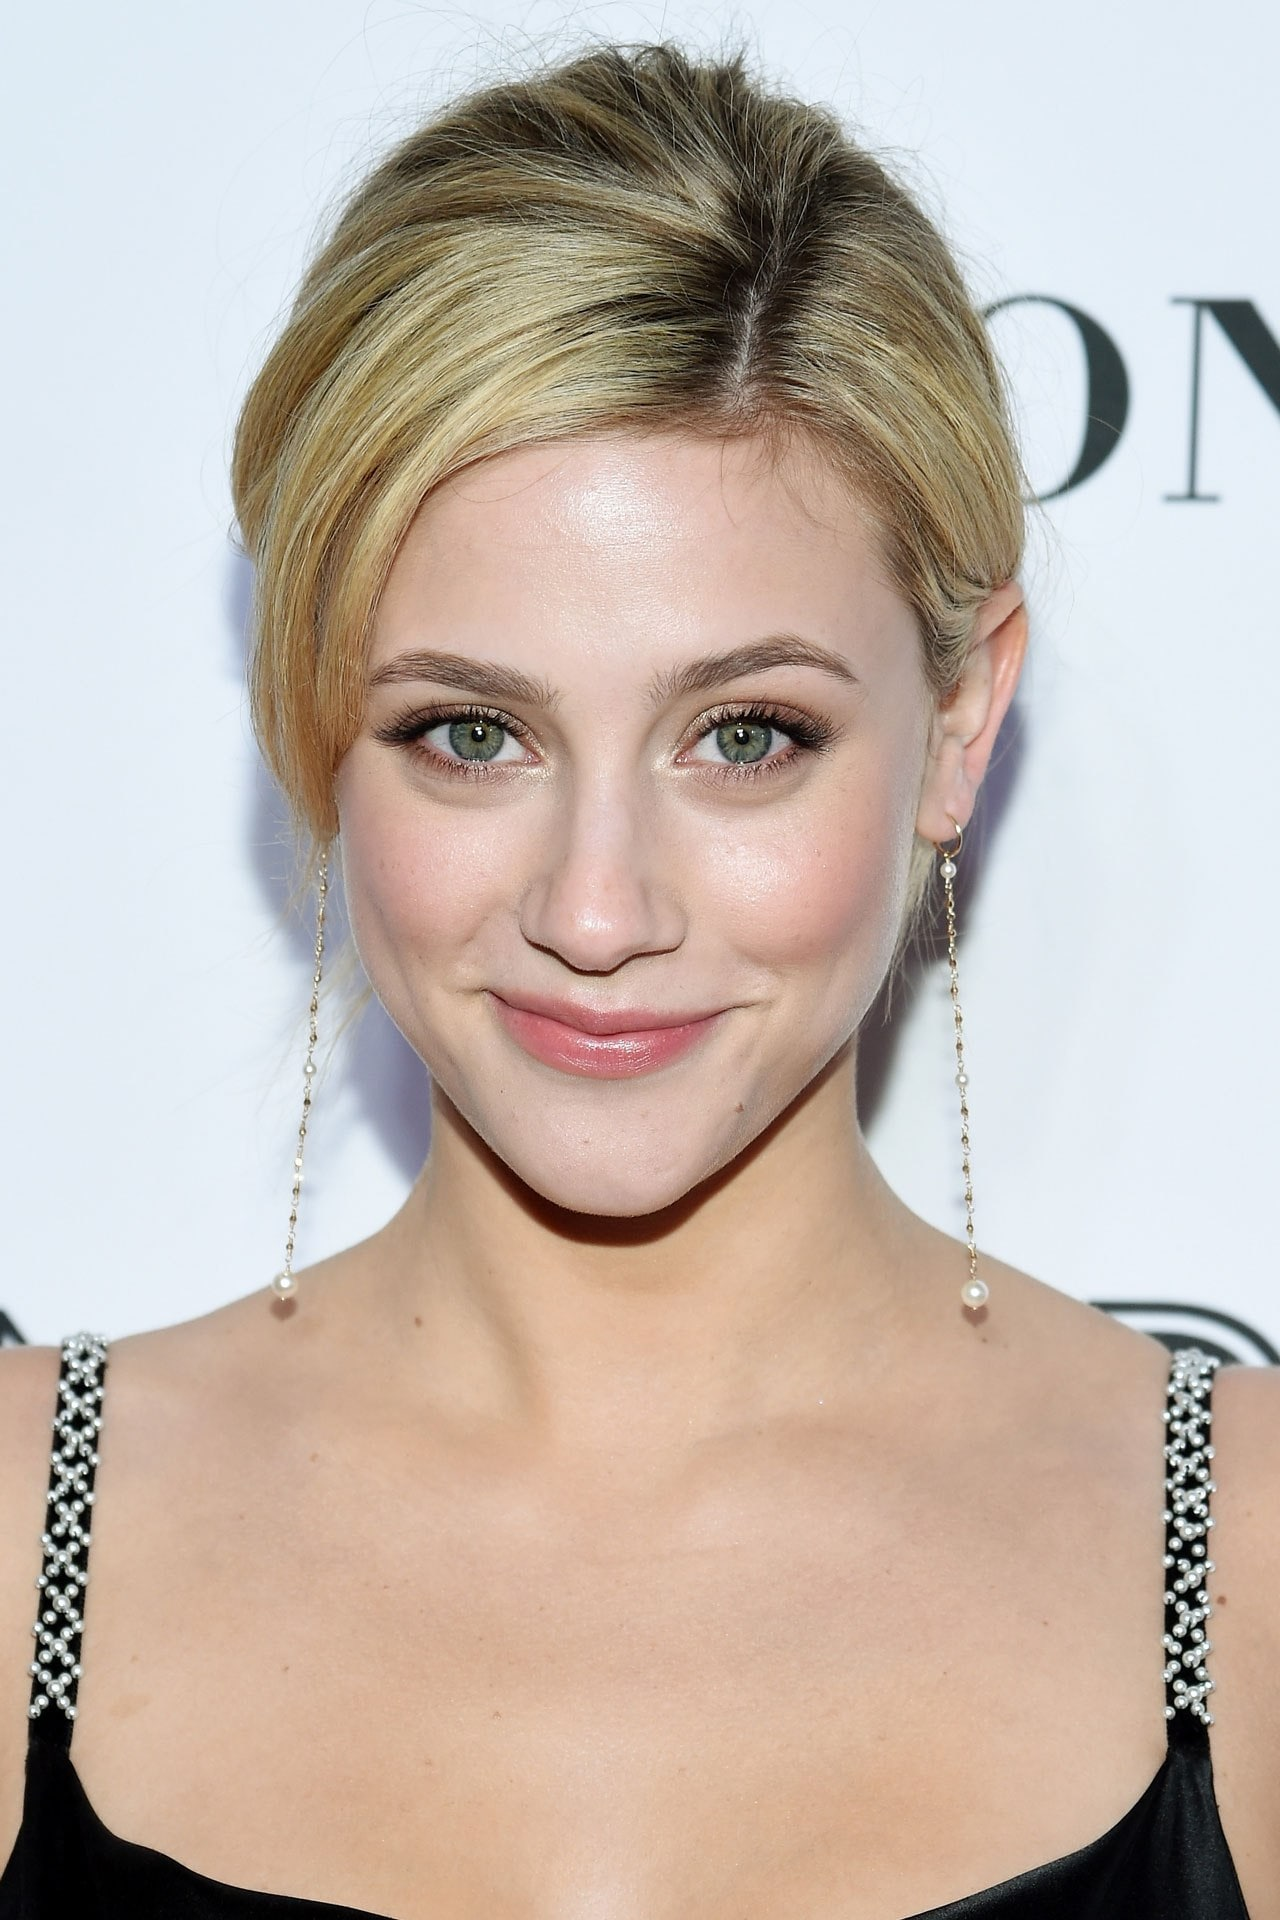 Lili Reinhart on what she'll do after Riverdale and why she's lifting the veil on Hollywood